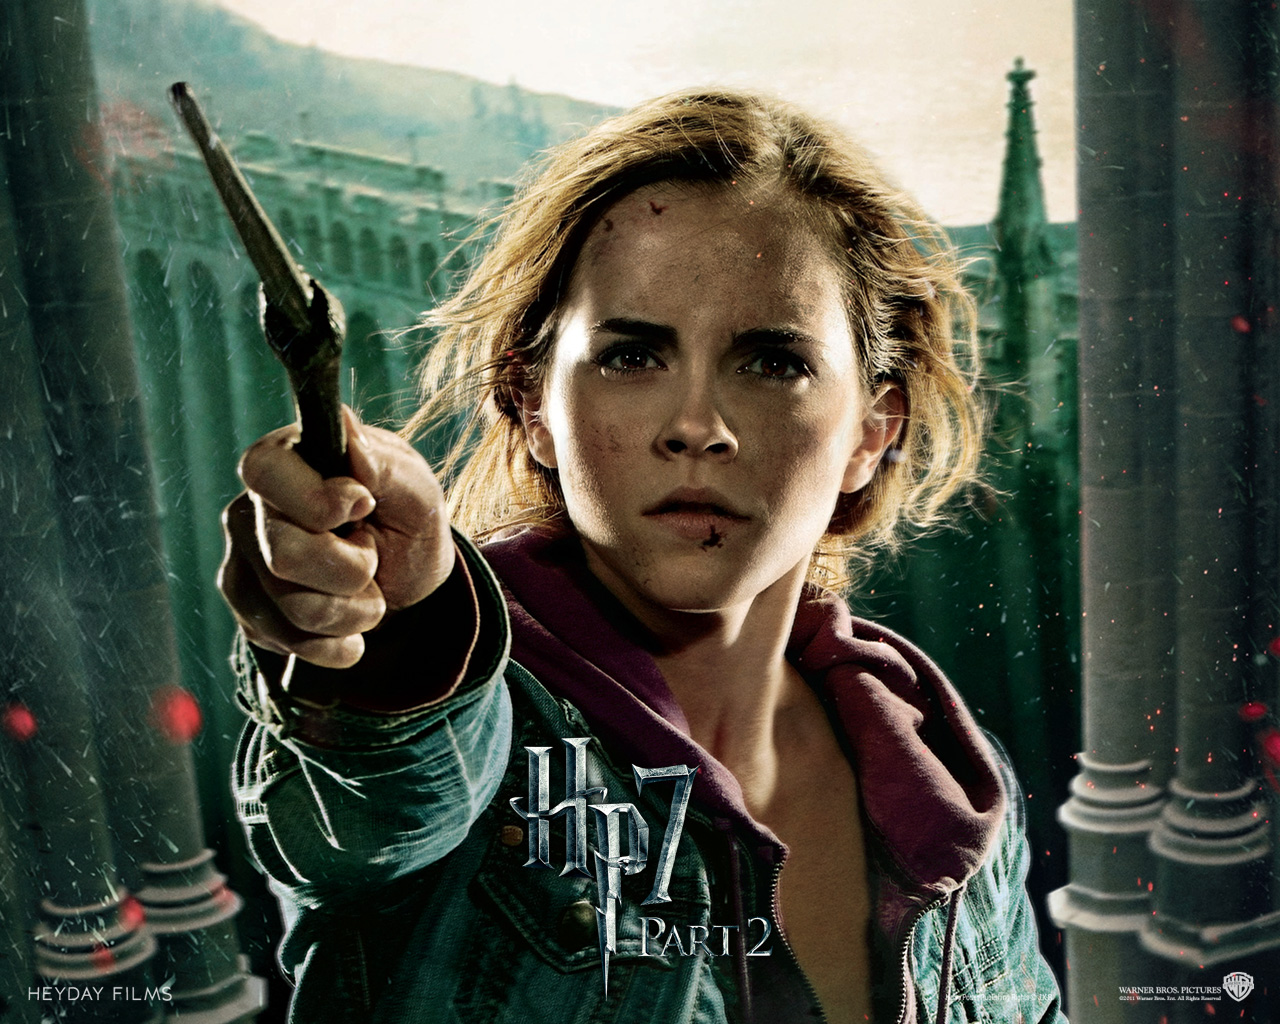 emma watson in deathly hallows wallpapers - Emma Watson in Deathly Hallows For Desktop